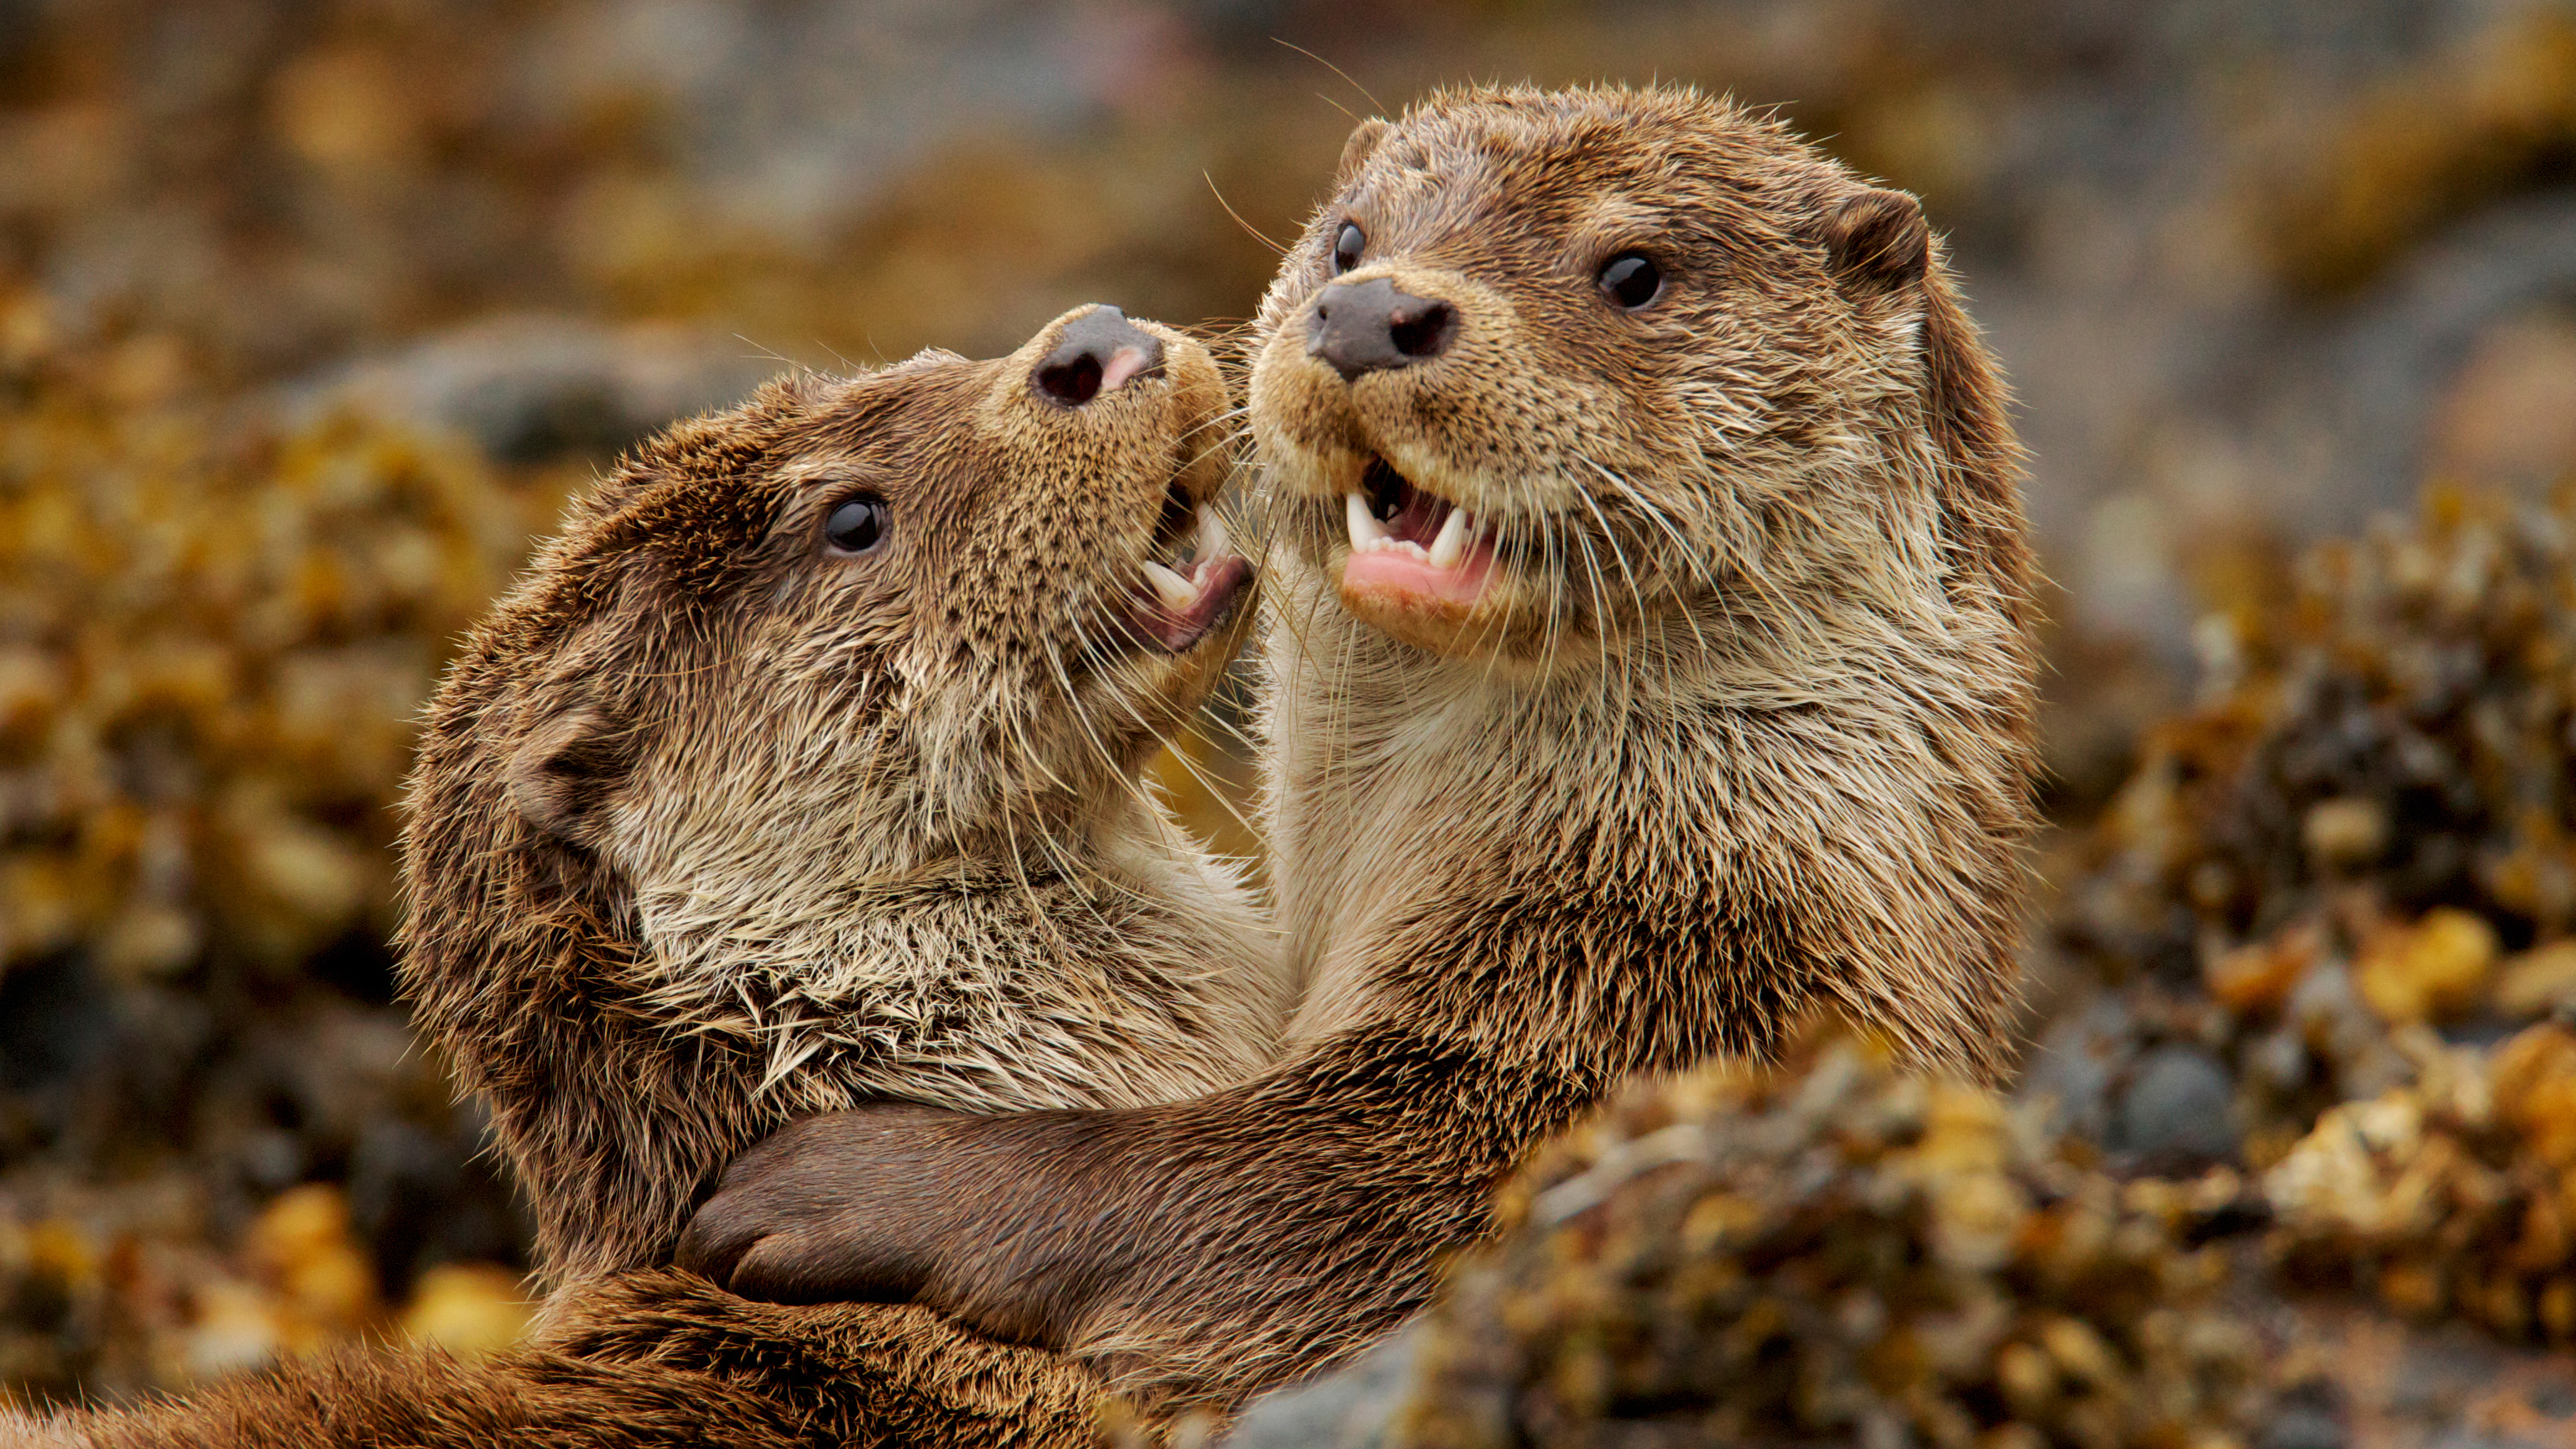 Charlie & the Curious Otters | About | Nature | PBS